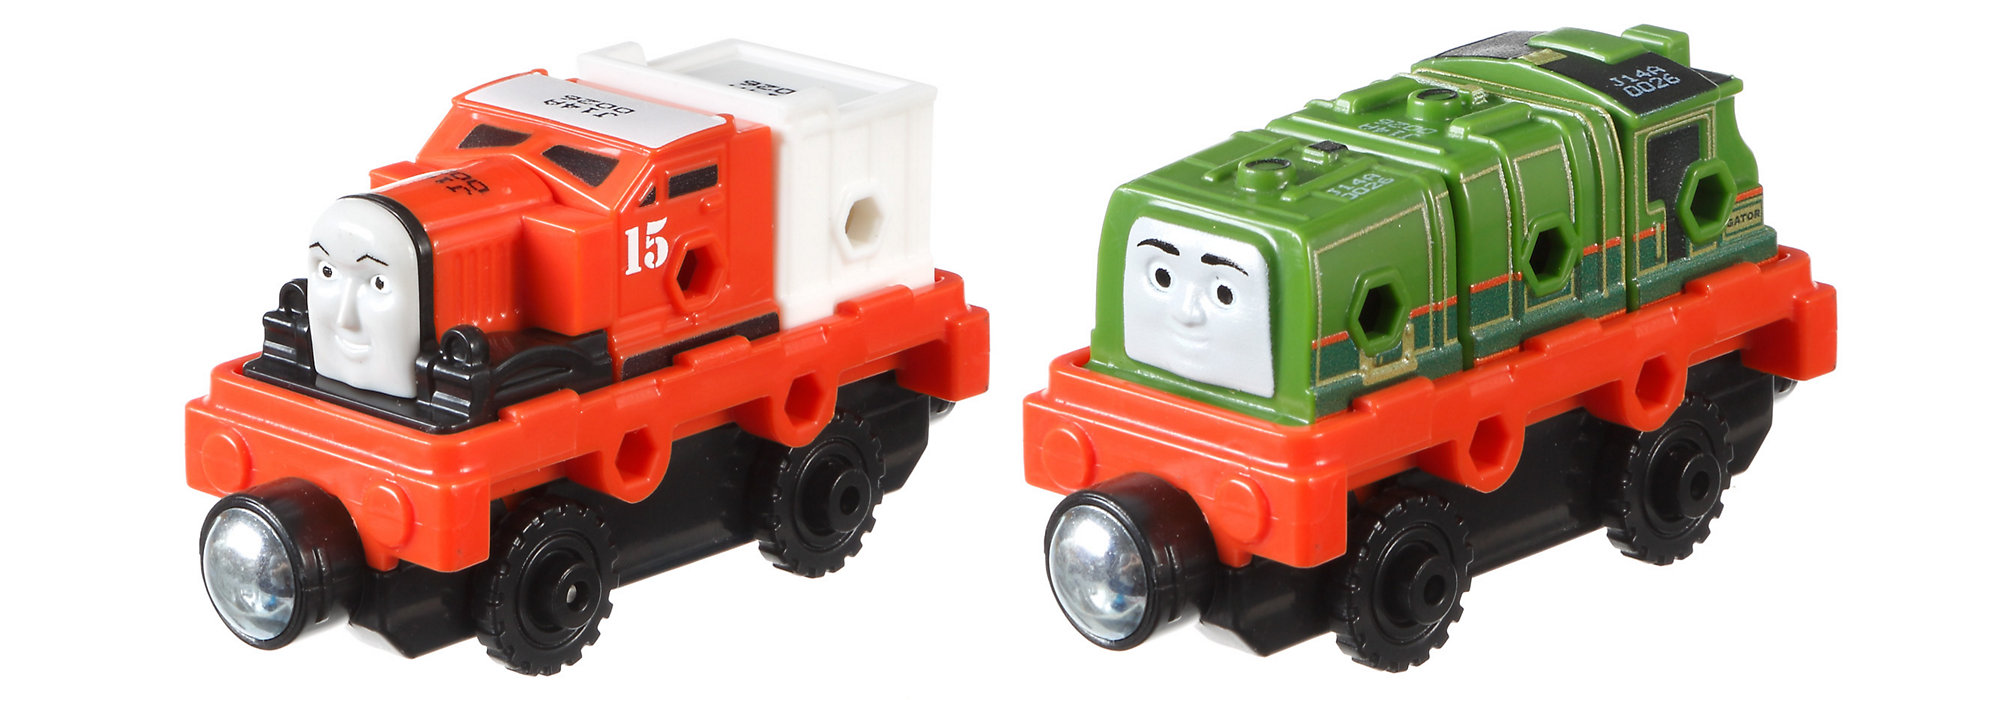 Fisher Price Thomas The Train Take-n-Play Engine Monster Pack by Fisher-Price